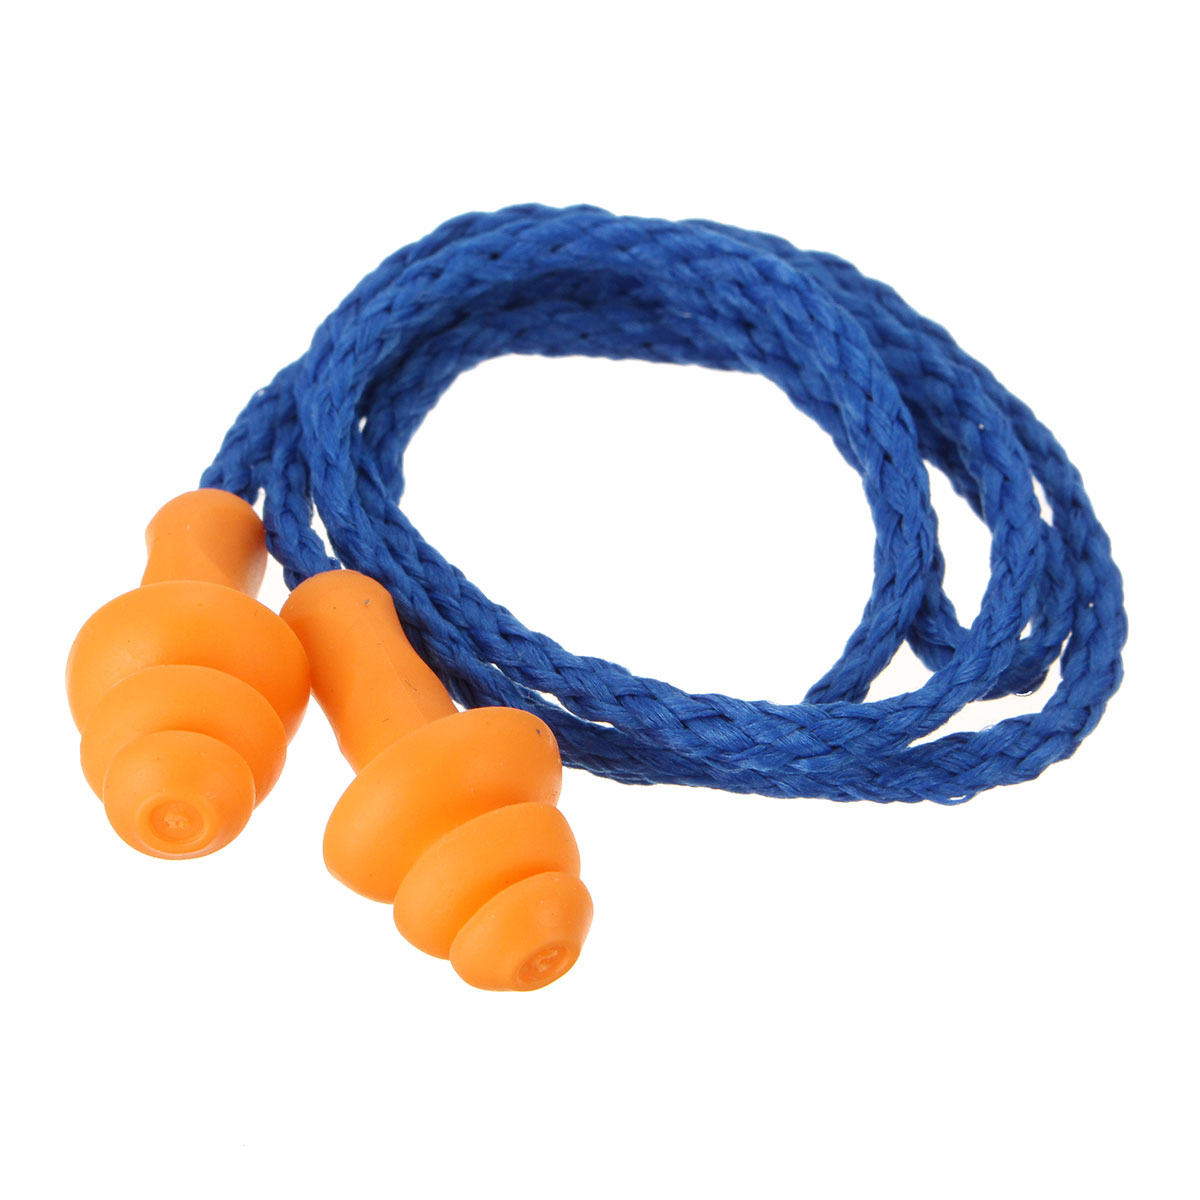 10Pcs/lot Soft Silicone Corded Ear Plugs Ears Protector Reusable Hearing Protection Noise Reduction Earplugs Earmuff